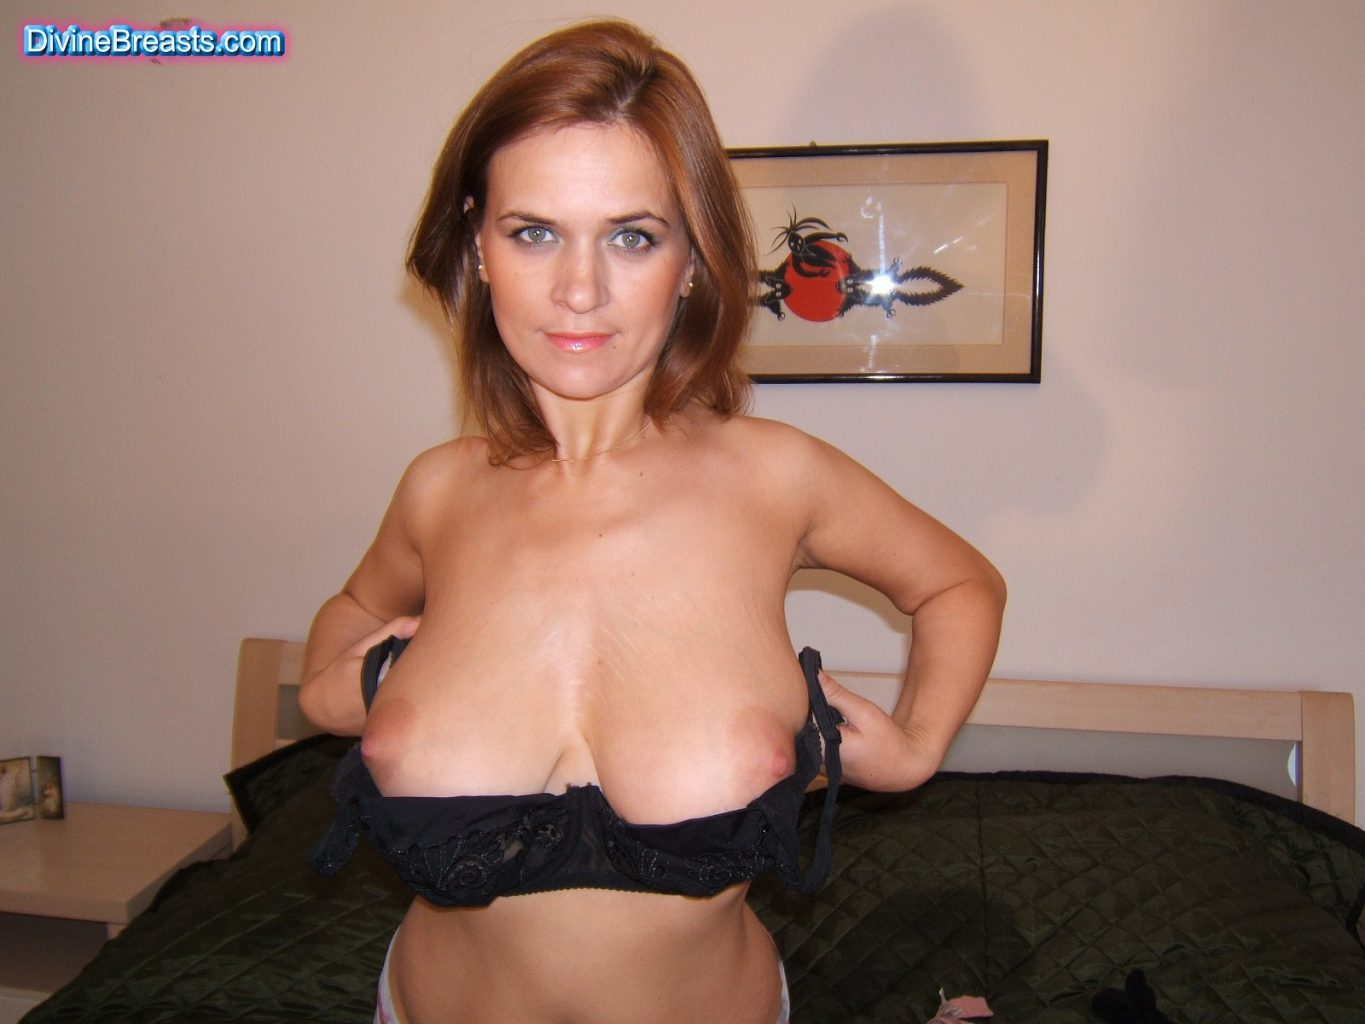 Ellen Trying On Bras Divine Breasts